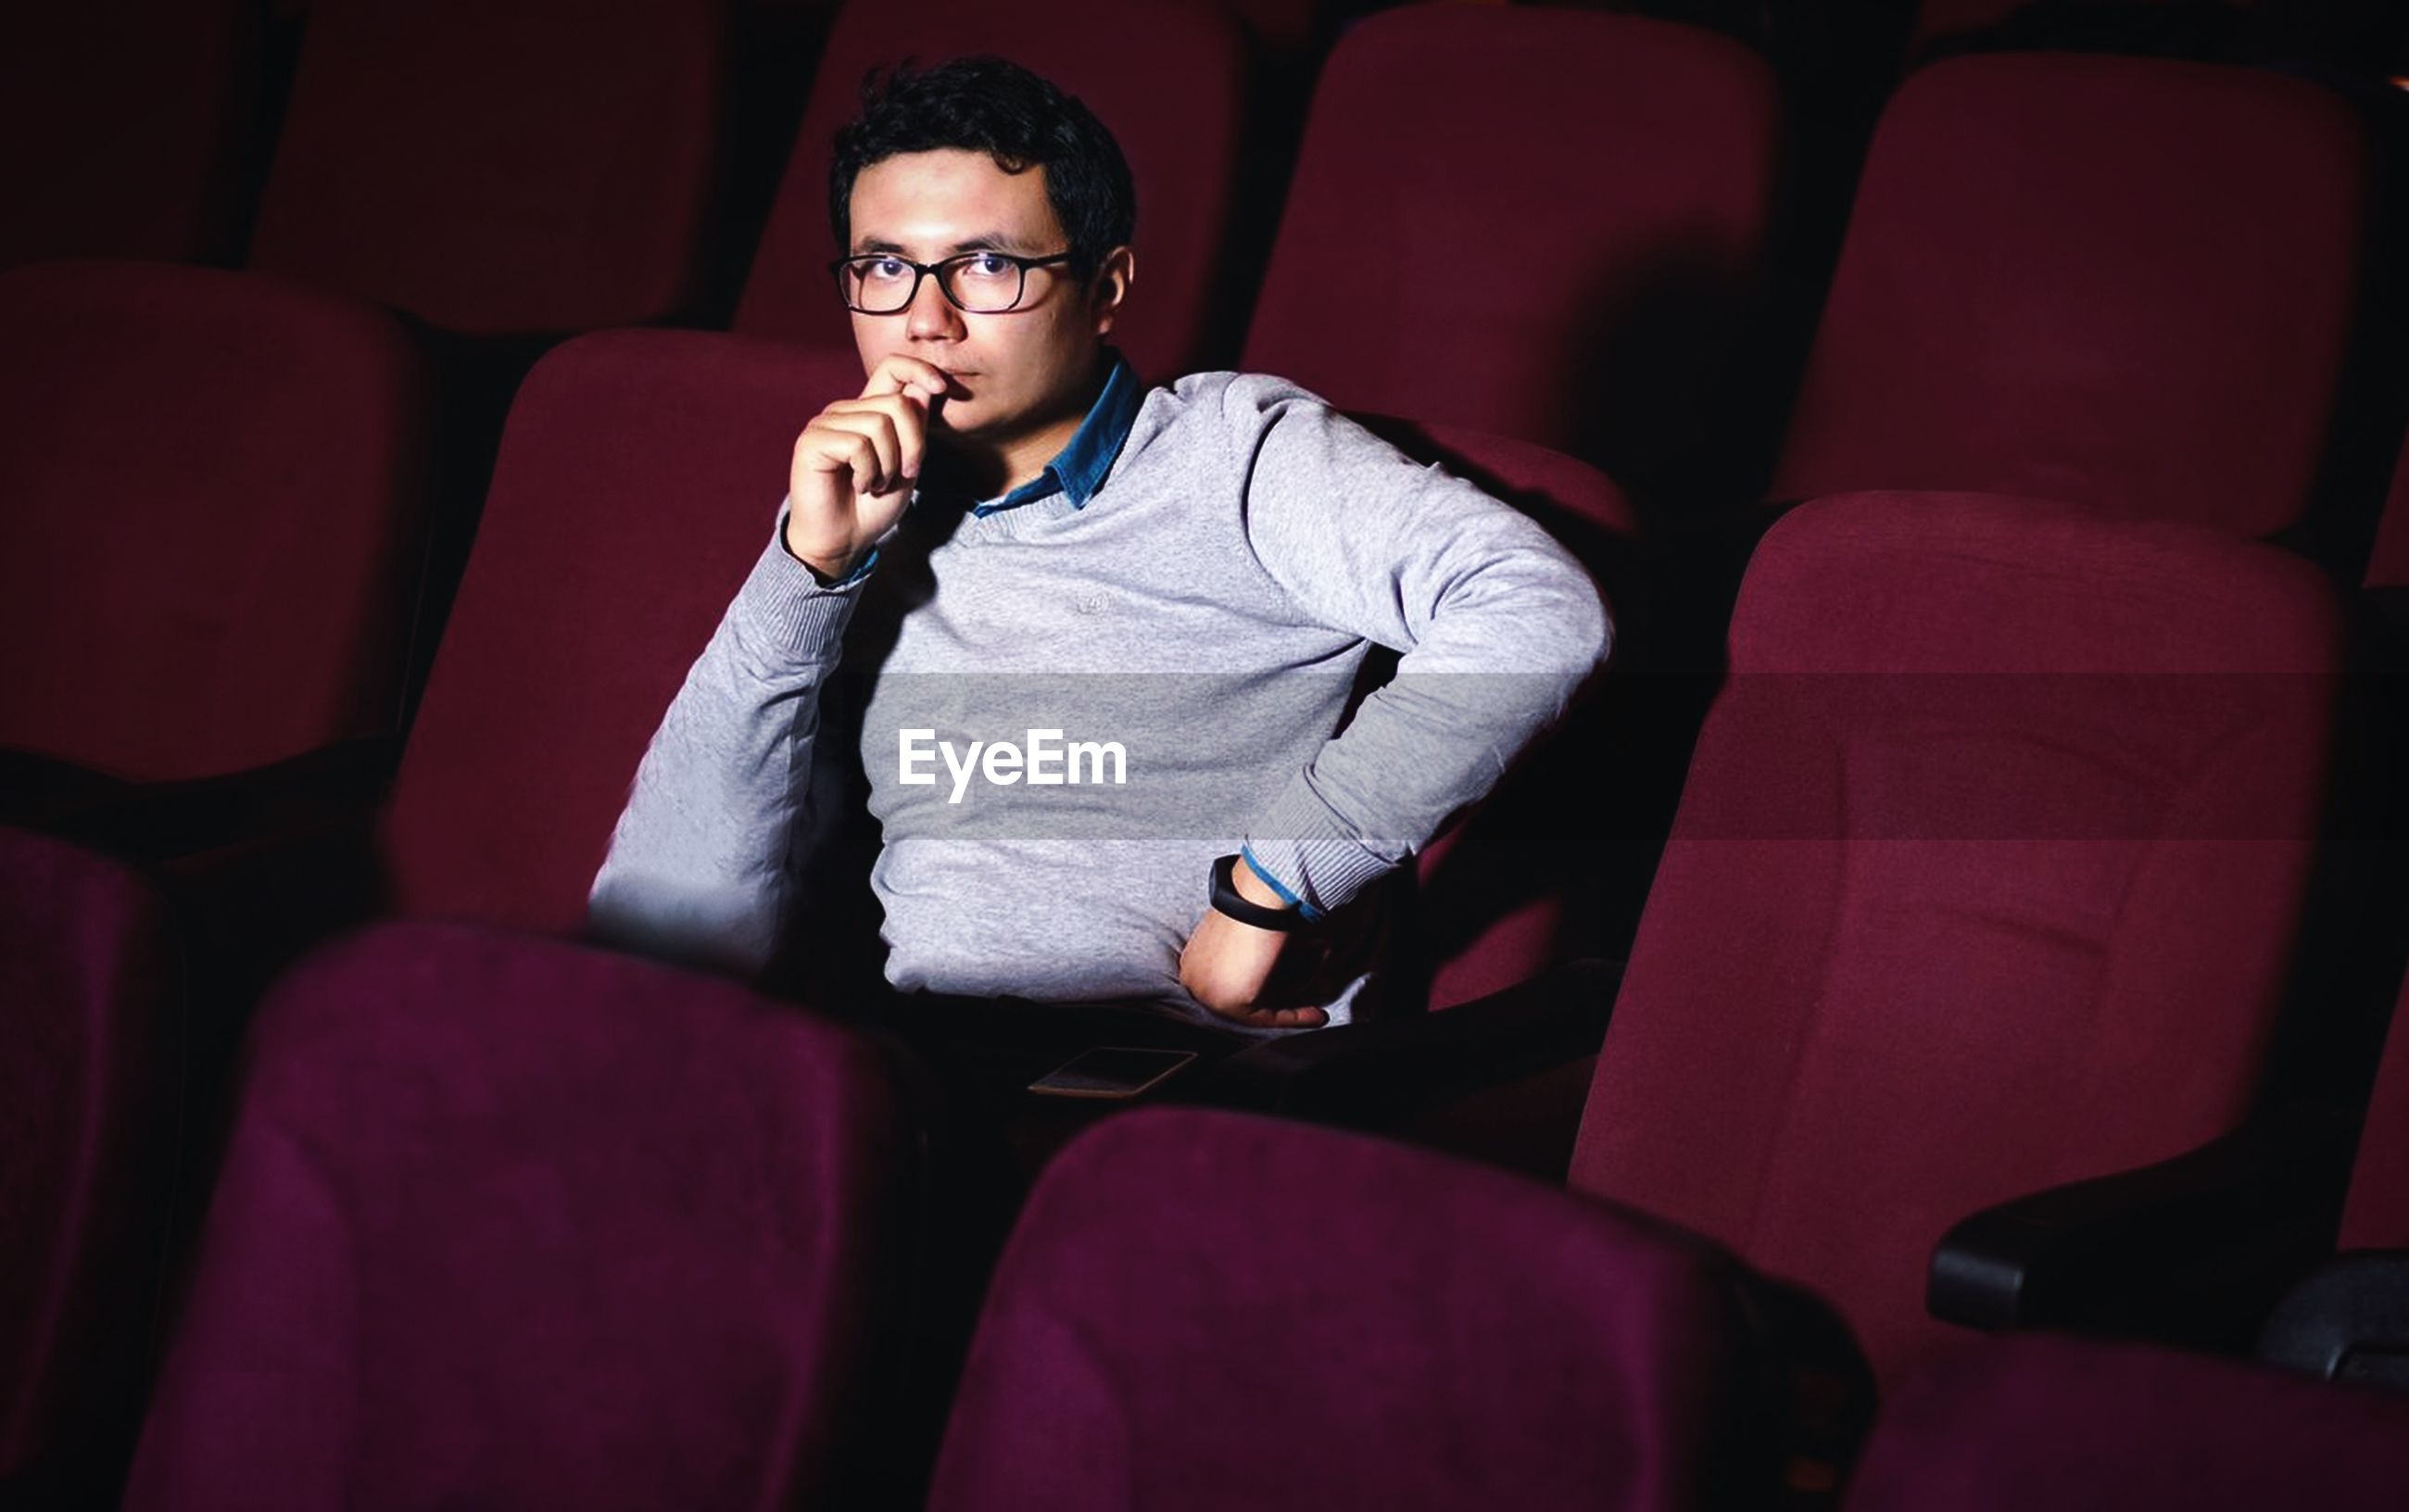 Young man sitting on seat in theater